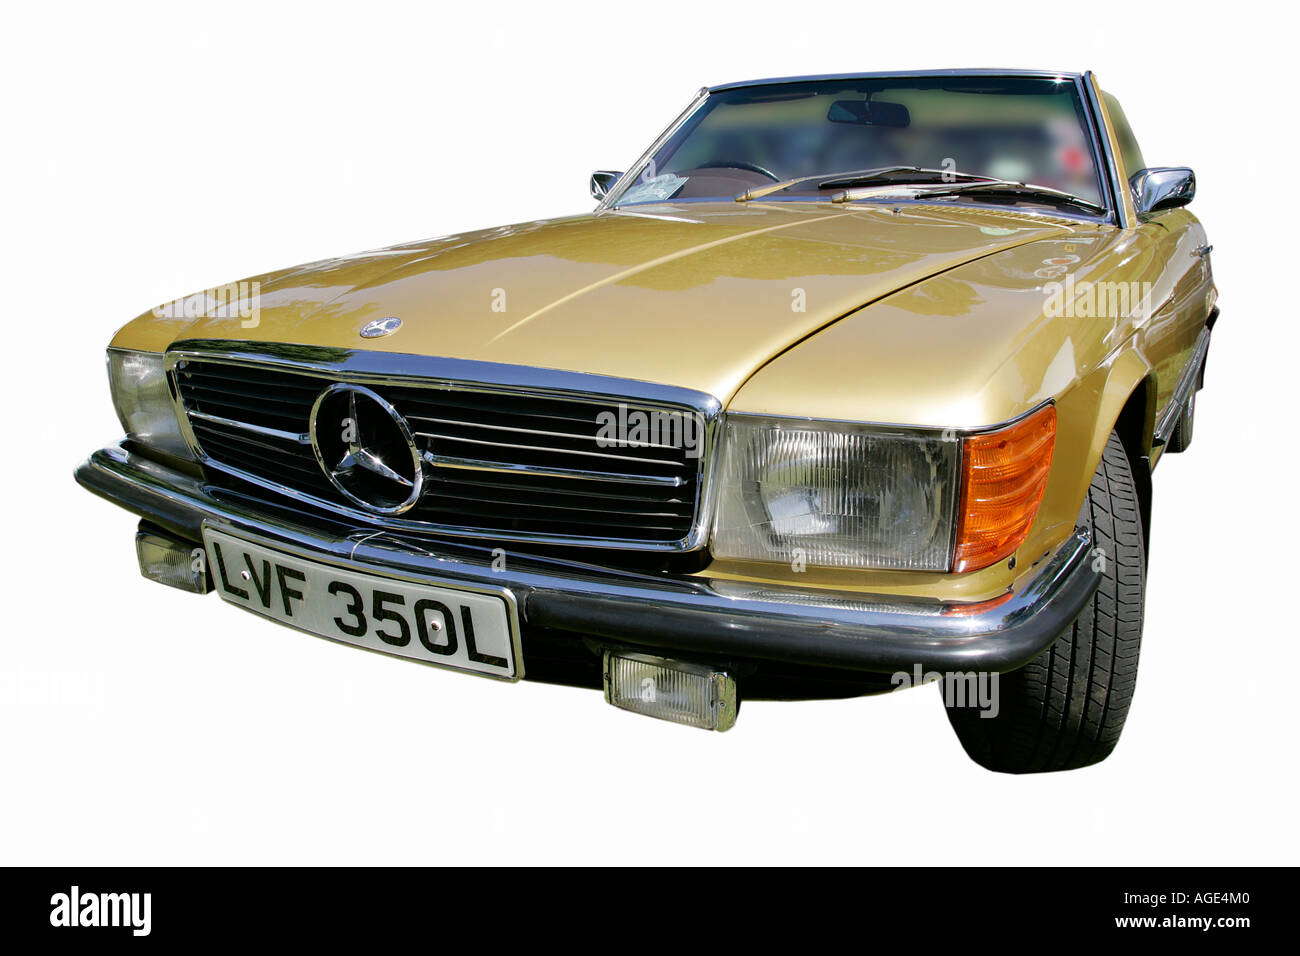 Classic car mercedes benz old history vehicle vintage for Mercedes benz car history